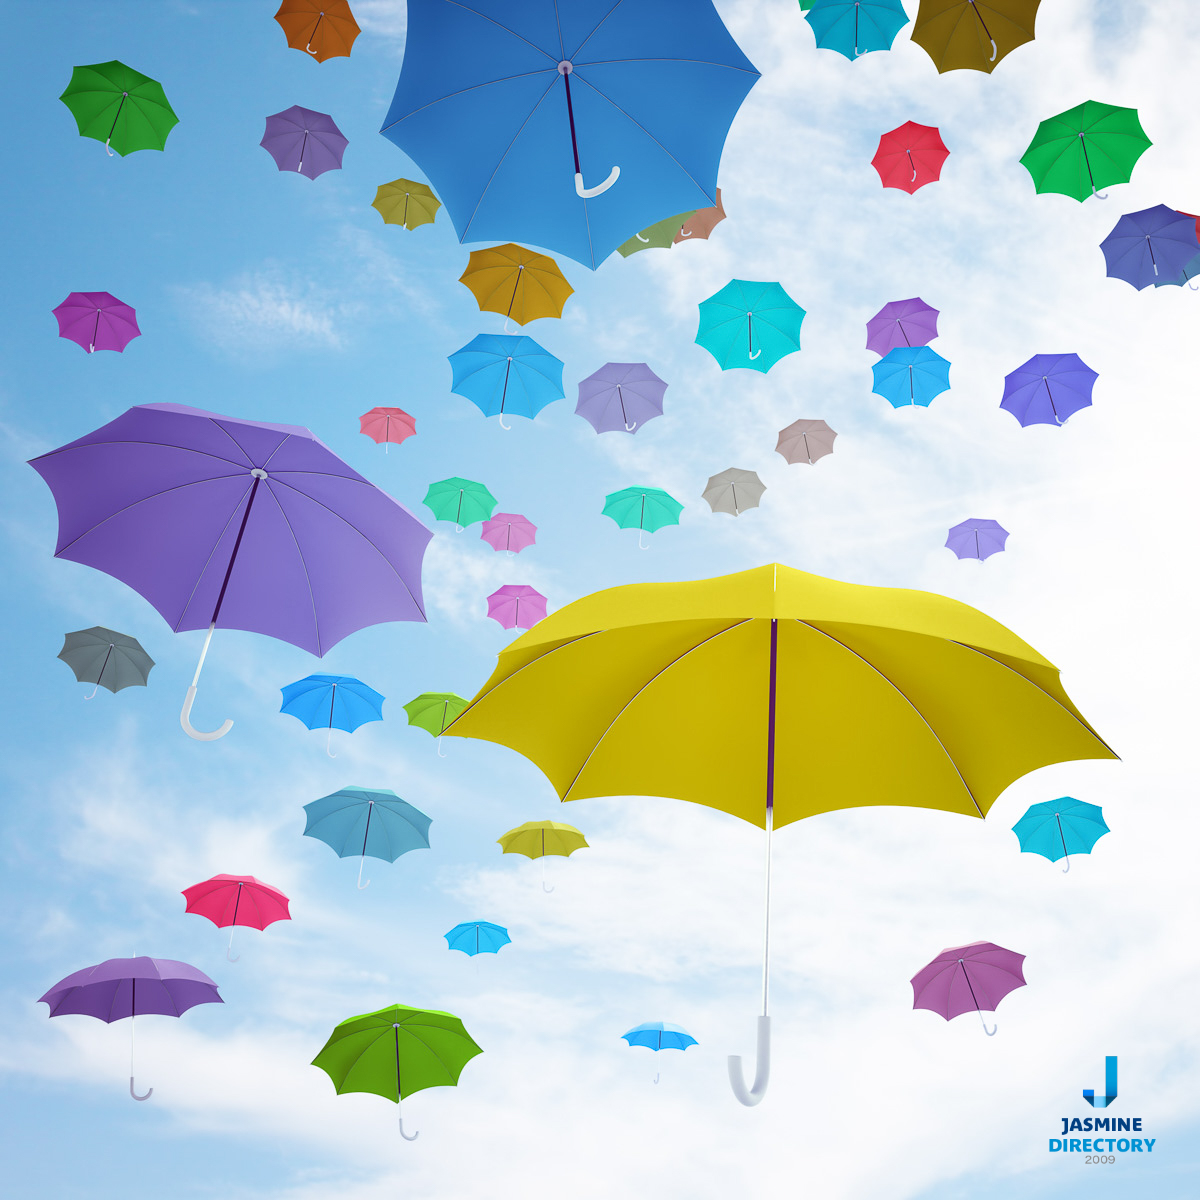 Stock photography - Umbrella